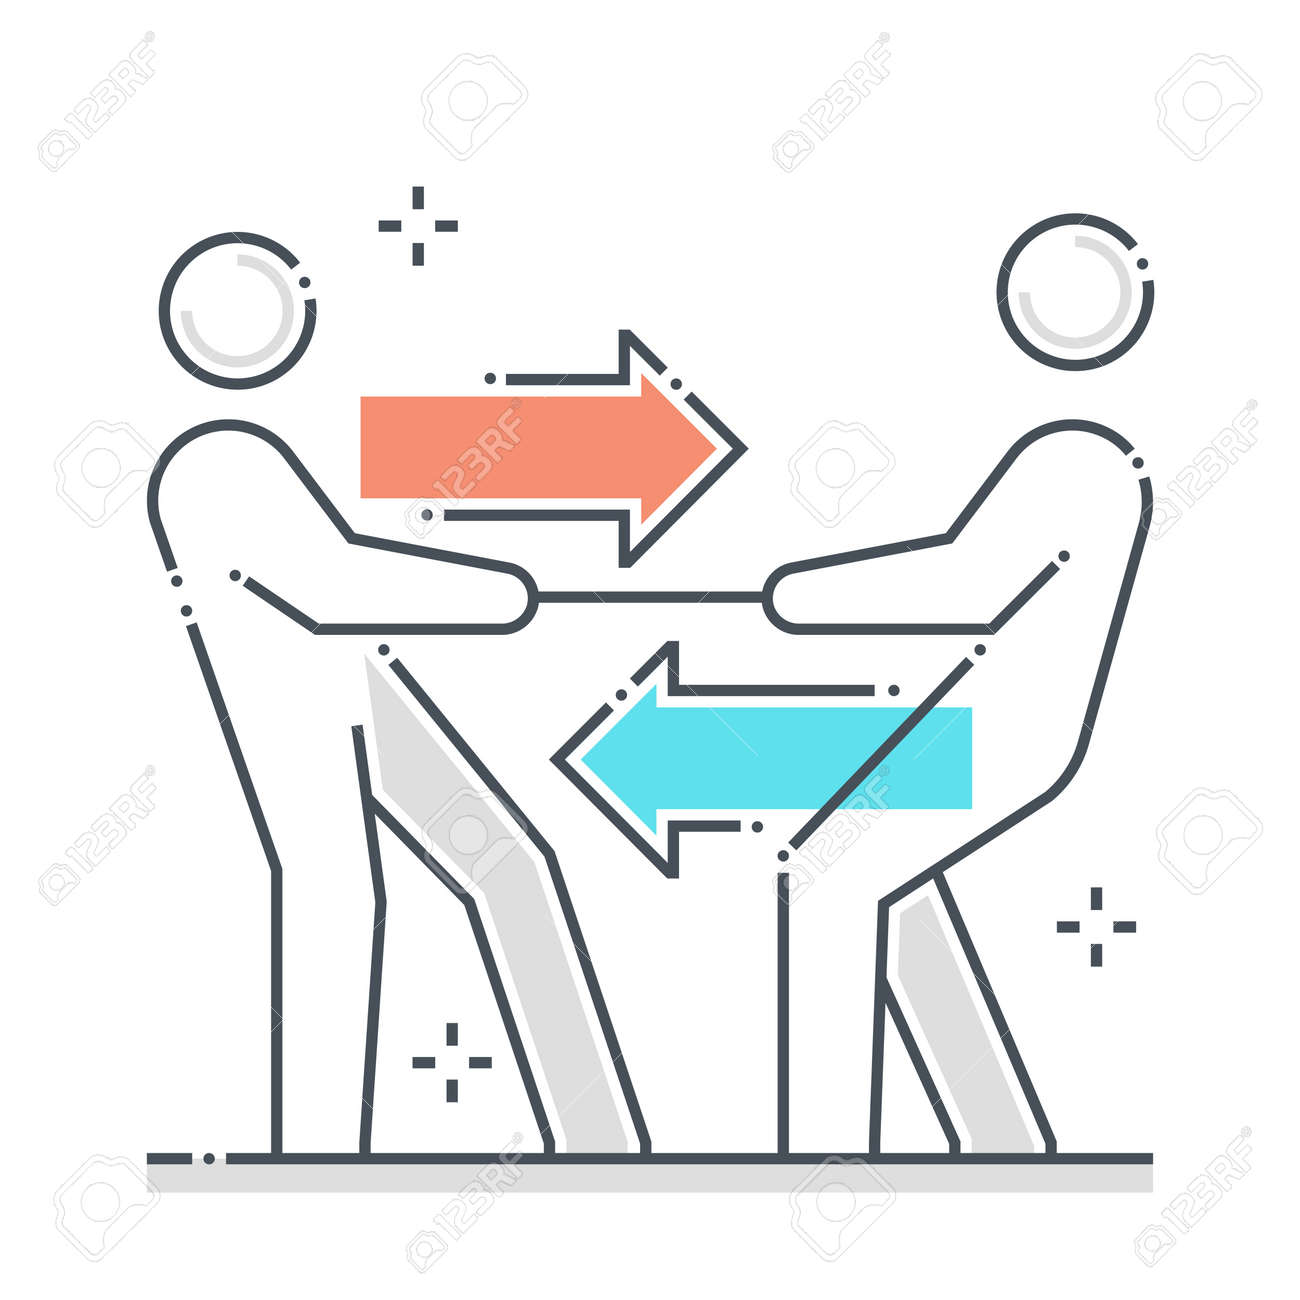 Legal case related color line vector icon, illustration. The icon is about opposition, court, pulling, rope, tug of war. - 163698376